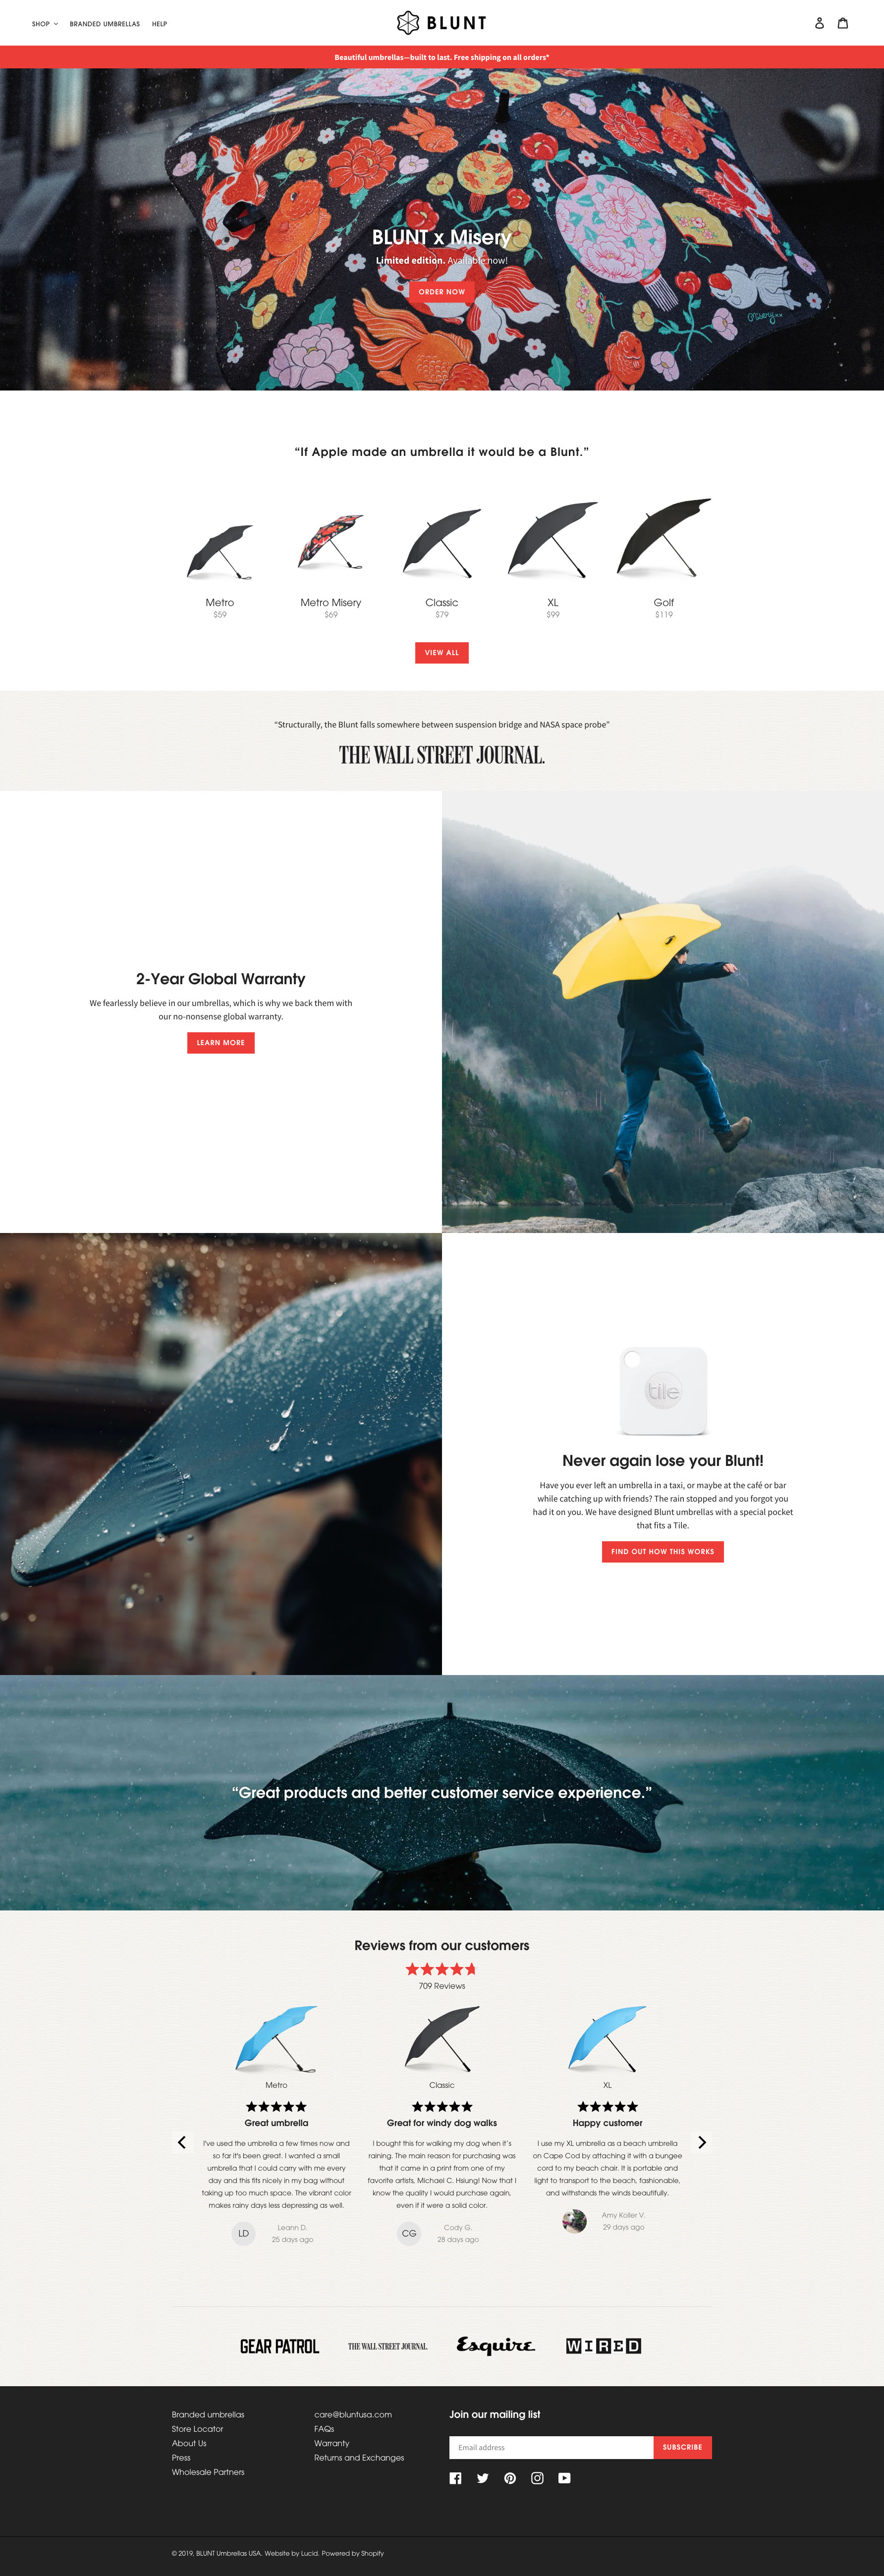 Blunt Umbrellas Usa Shopify Plus Website Redesign And Ongoing Growth Optimization For The World S Best Umbrellas By Lucid